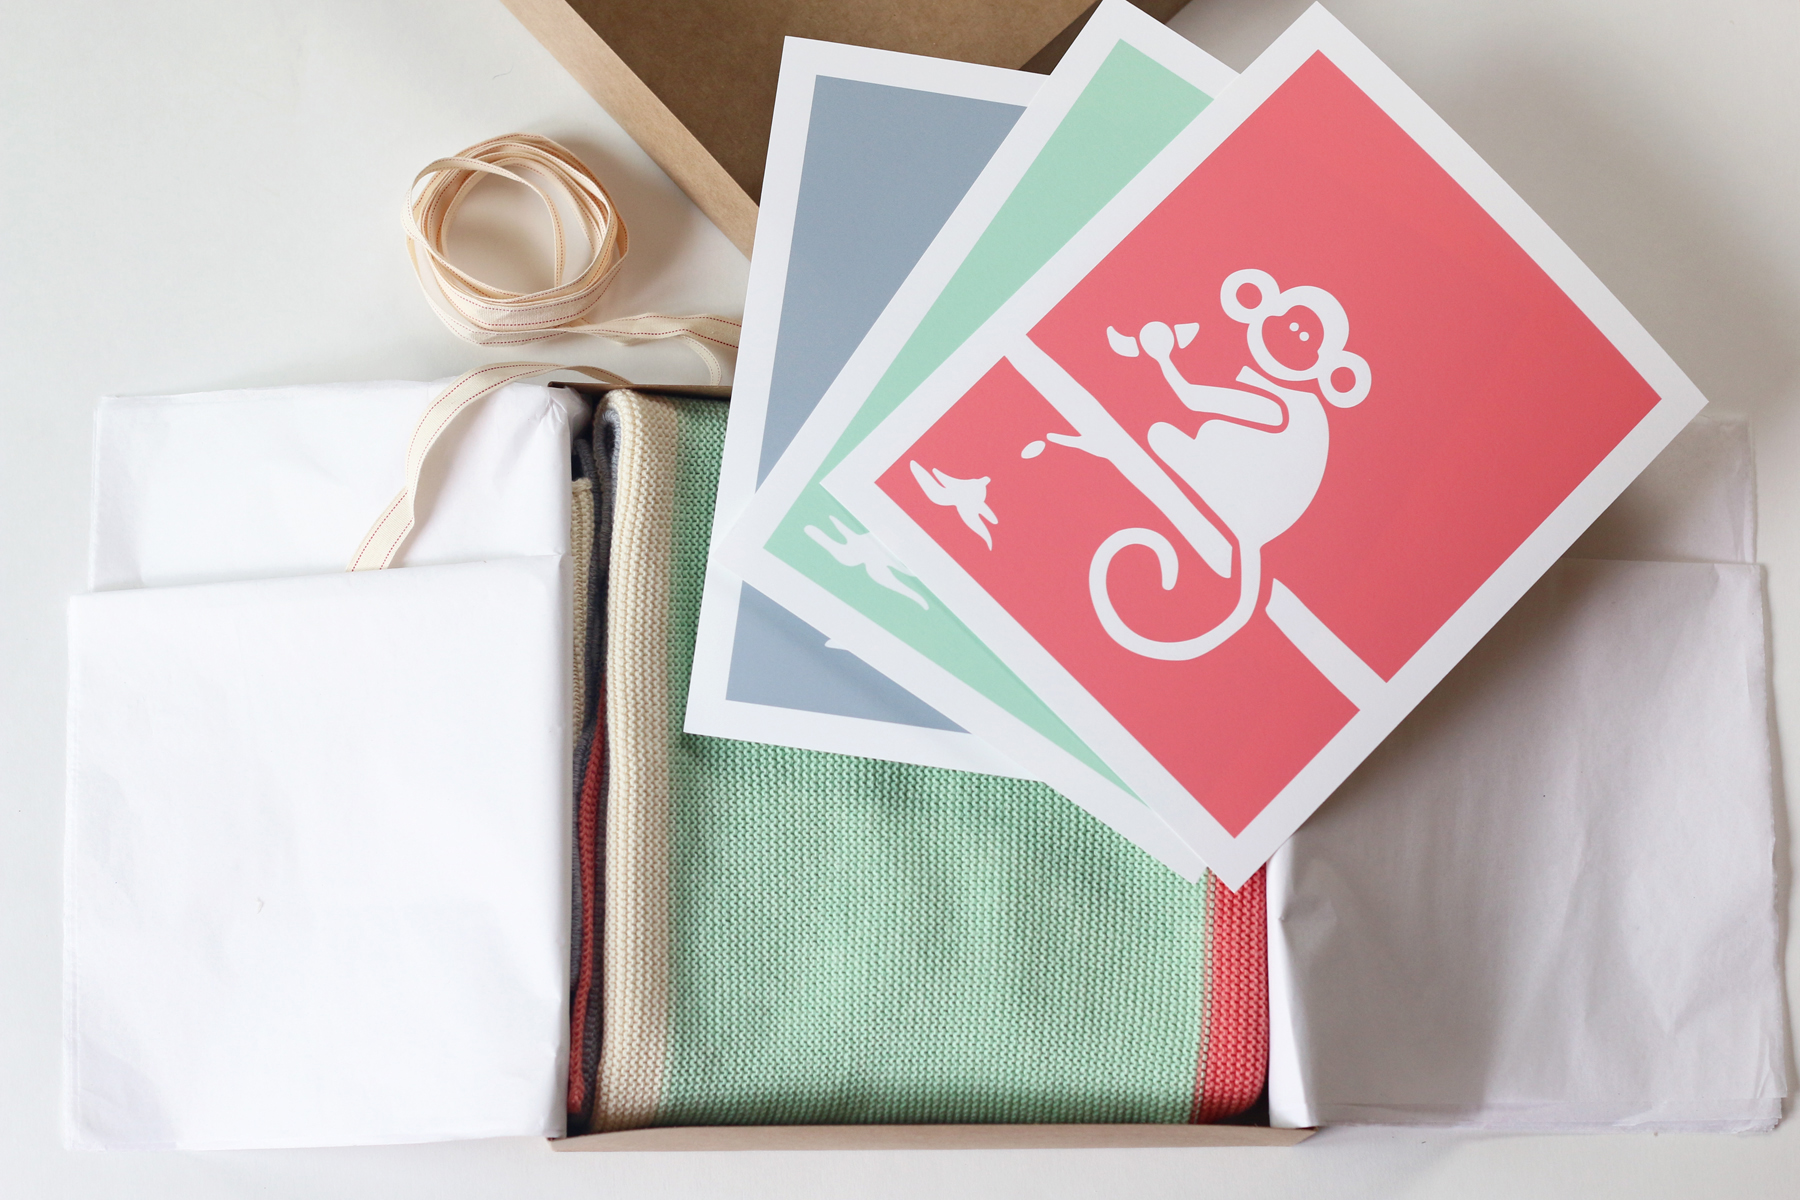 The gift set comes wrapped with tissue paper and packaged in a lovely kraft box wrapped with ribbon. You can send it to anyone with your personalized gift message!